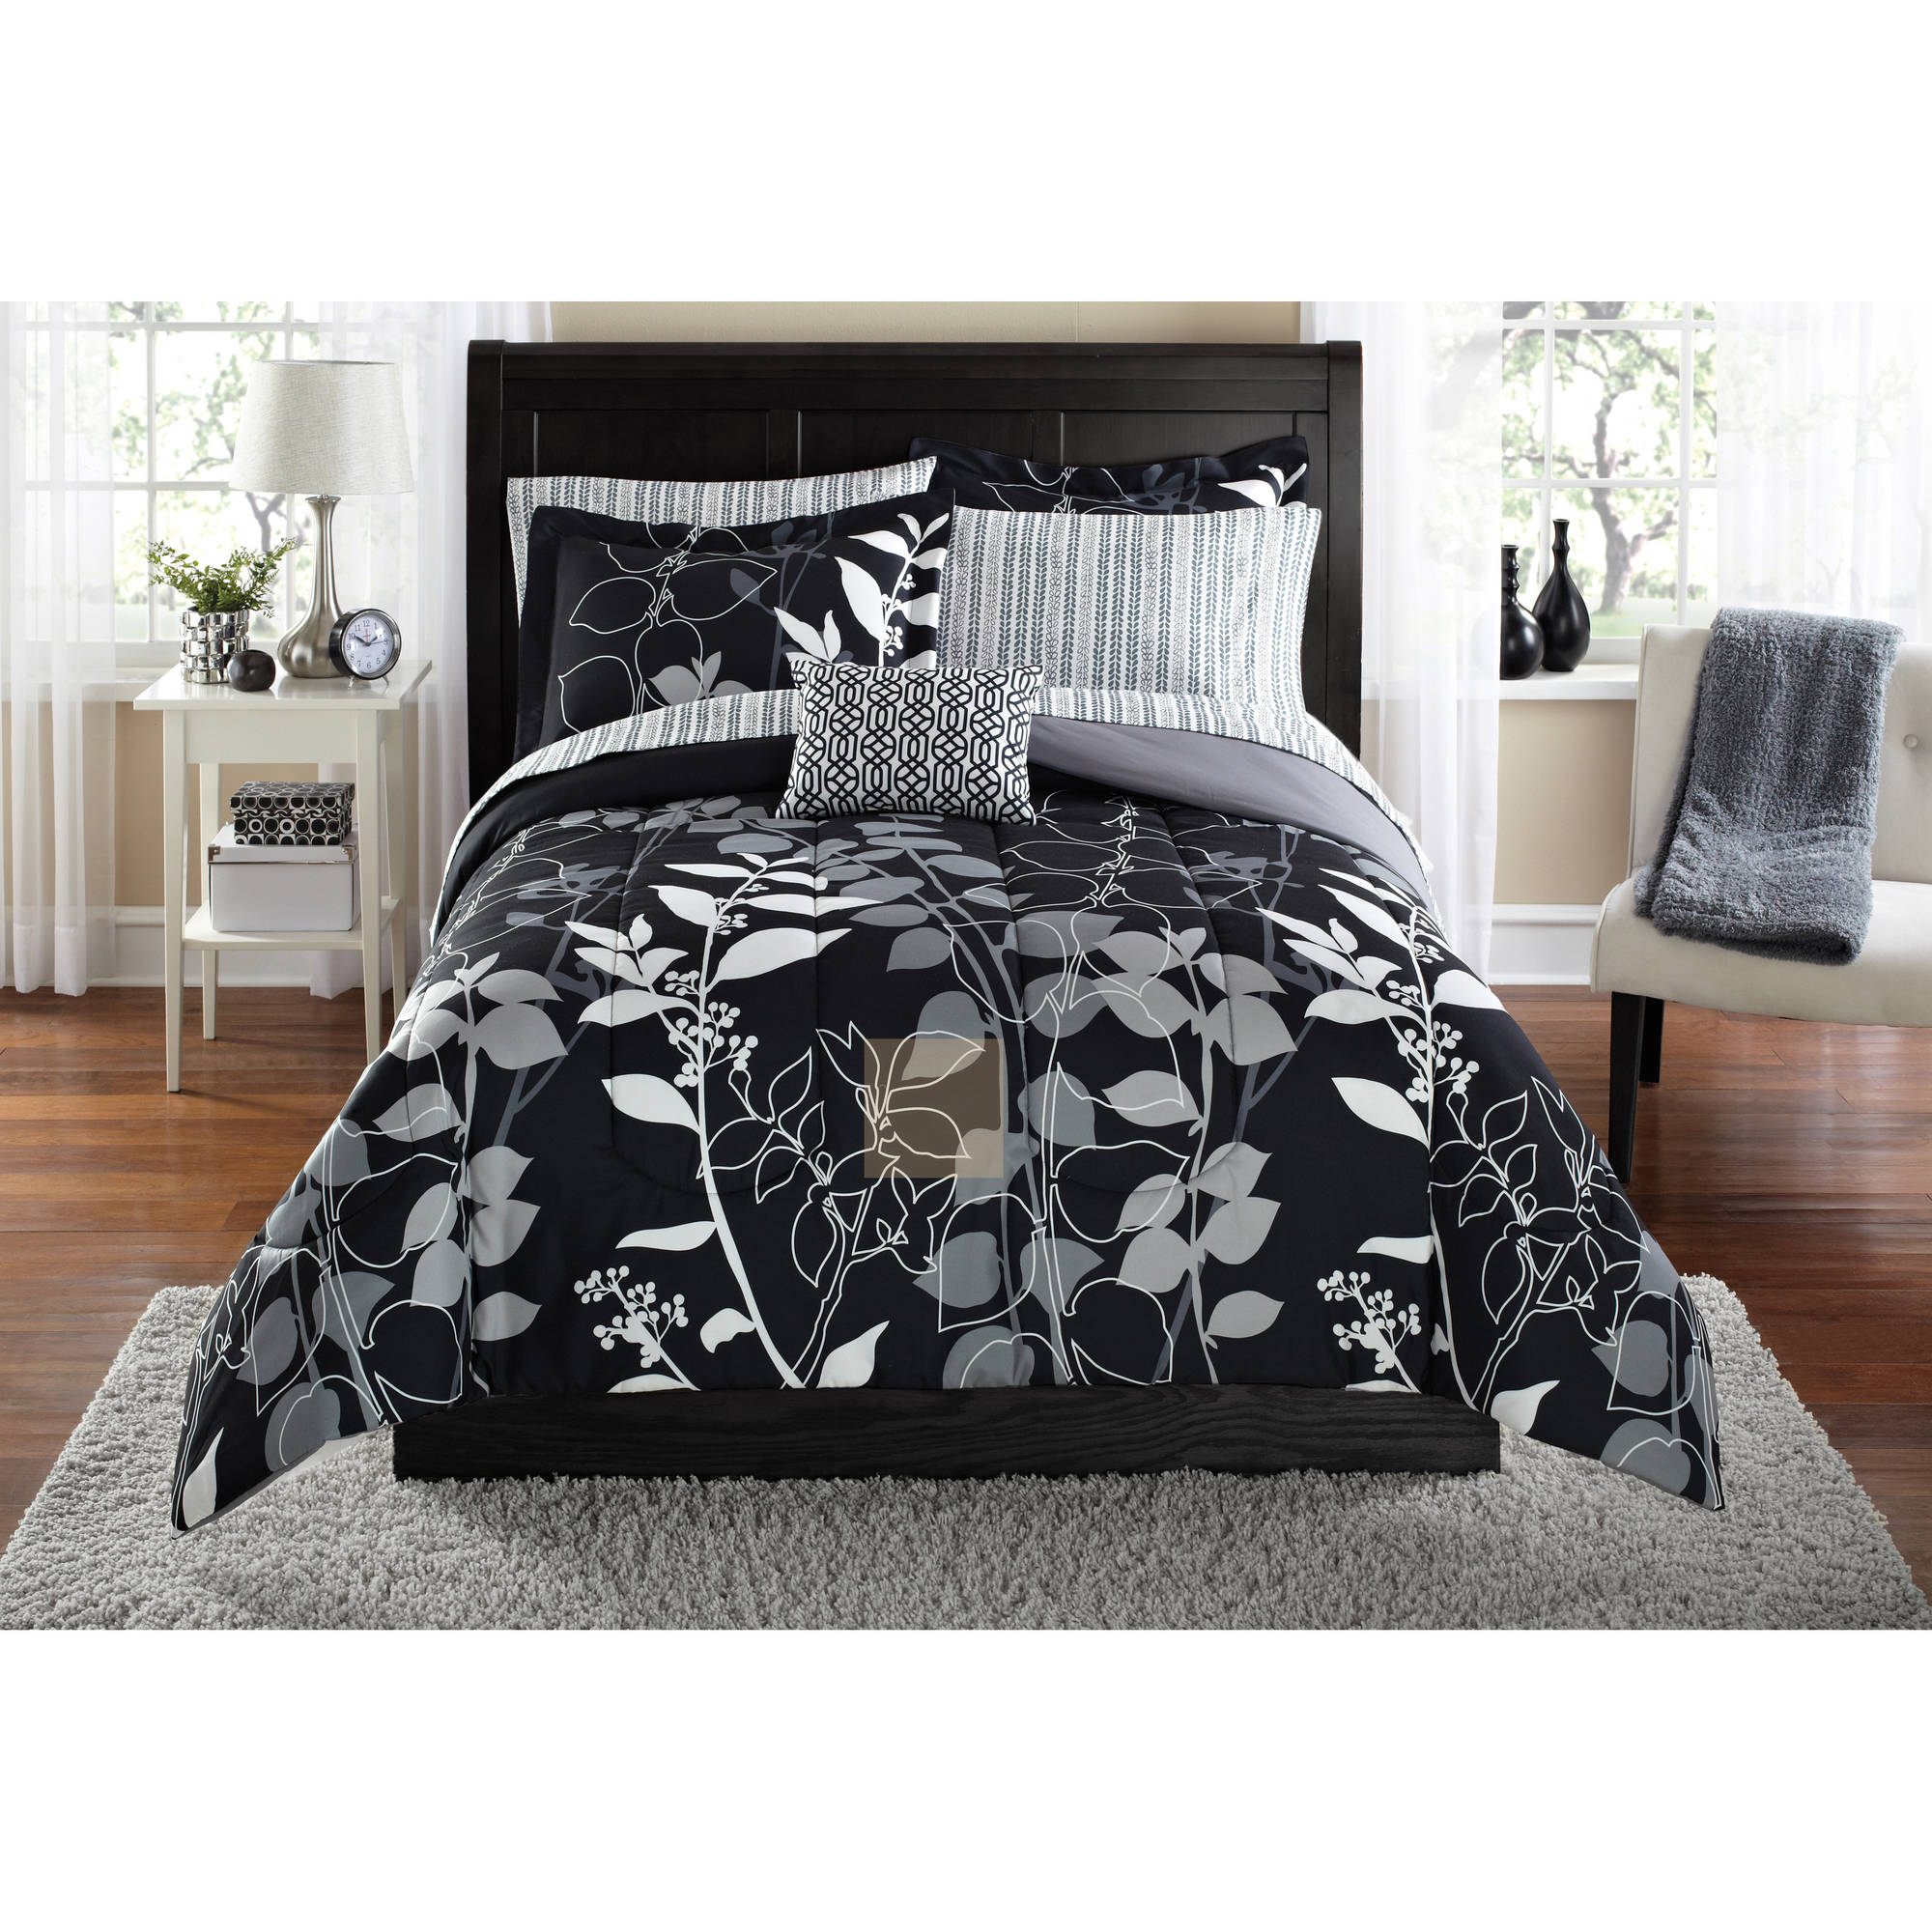 Mainstays Orkasi Bed in a Bag Coordinated Bedding Set Walmartcom